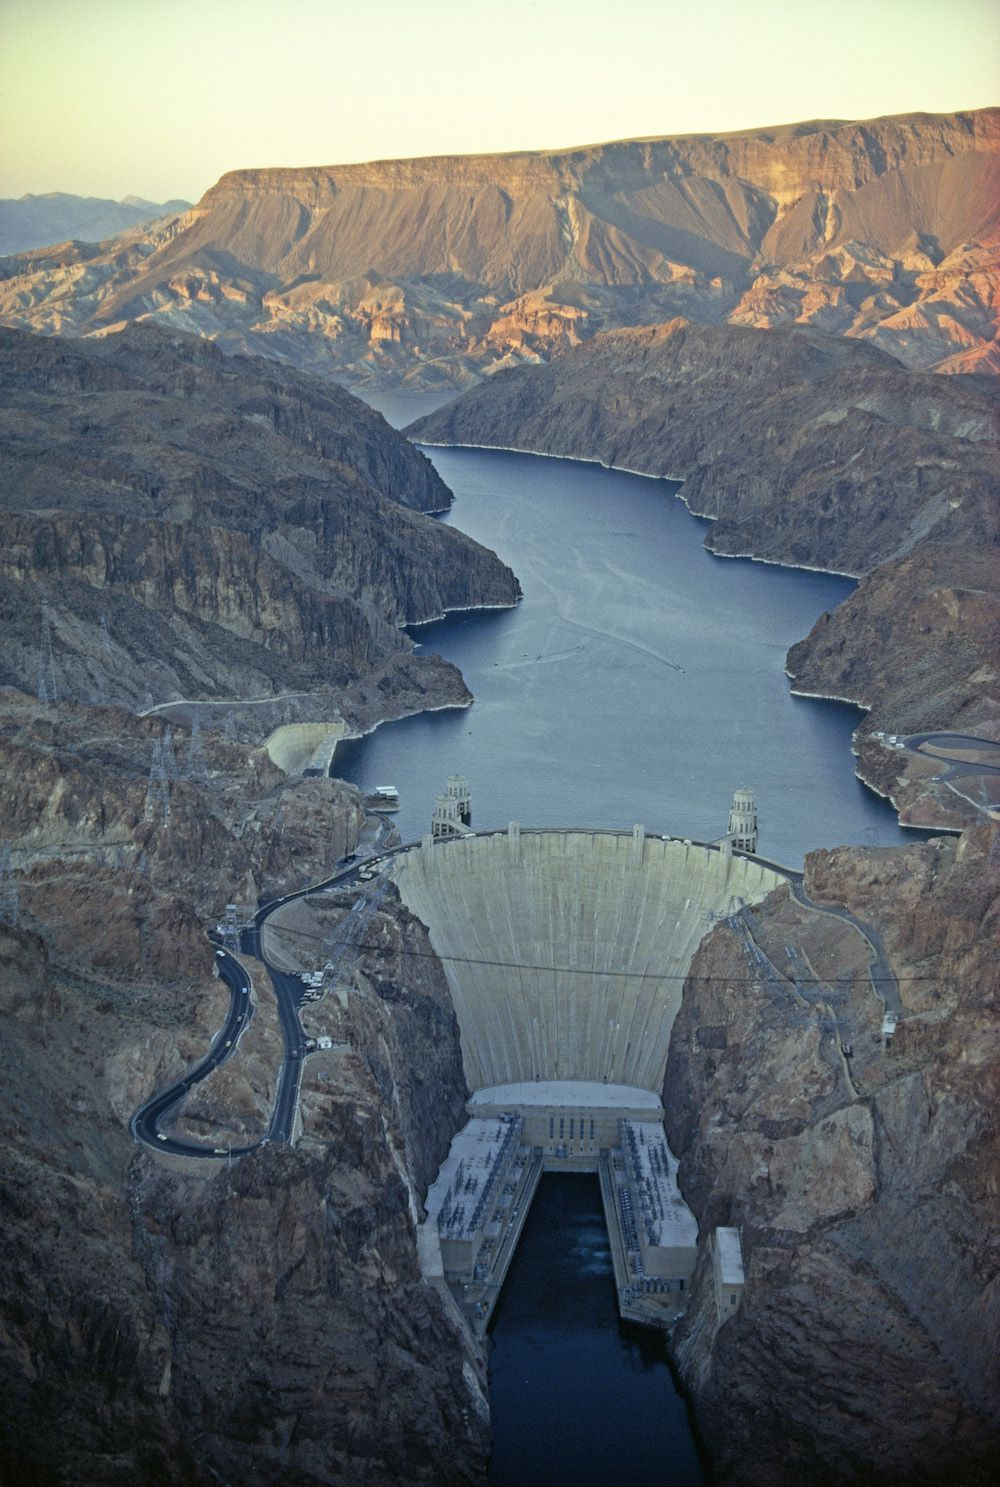 Hoover Dam Powers La National Geographic Society - Hoover-dam-on-us-map